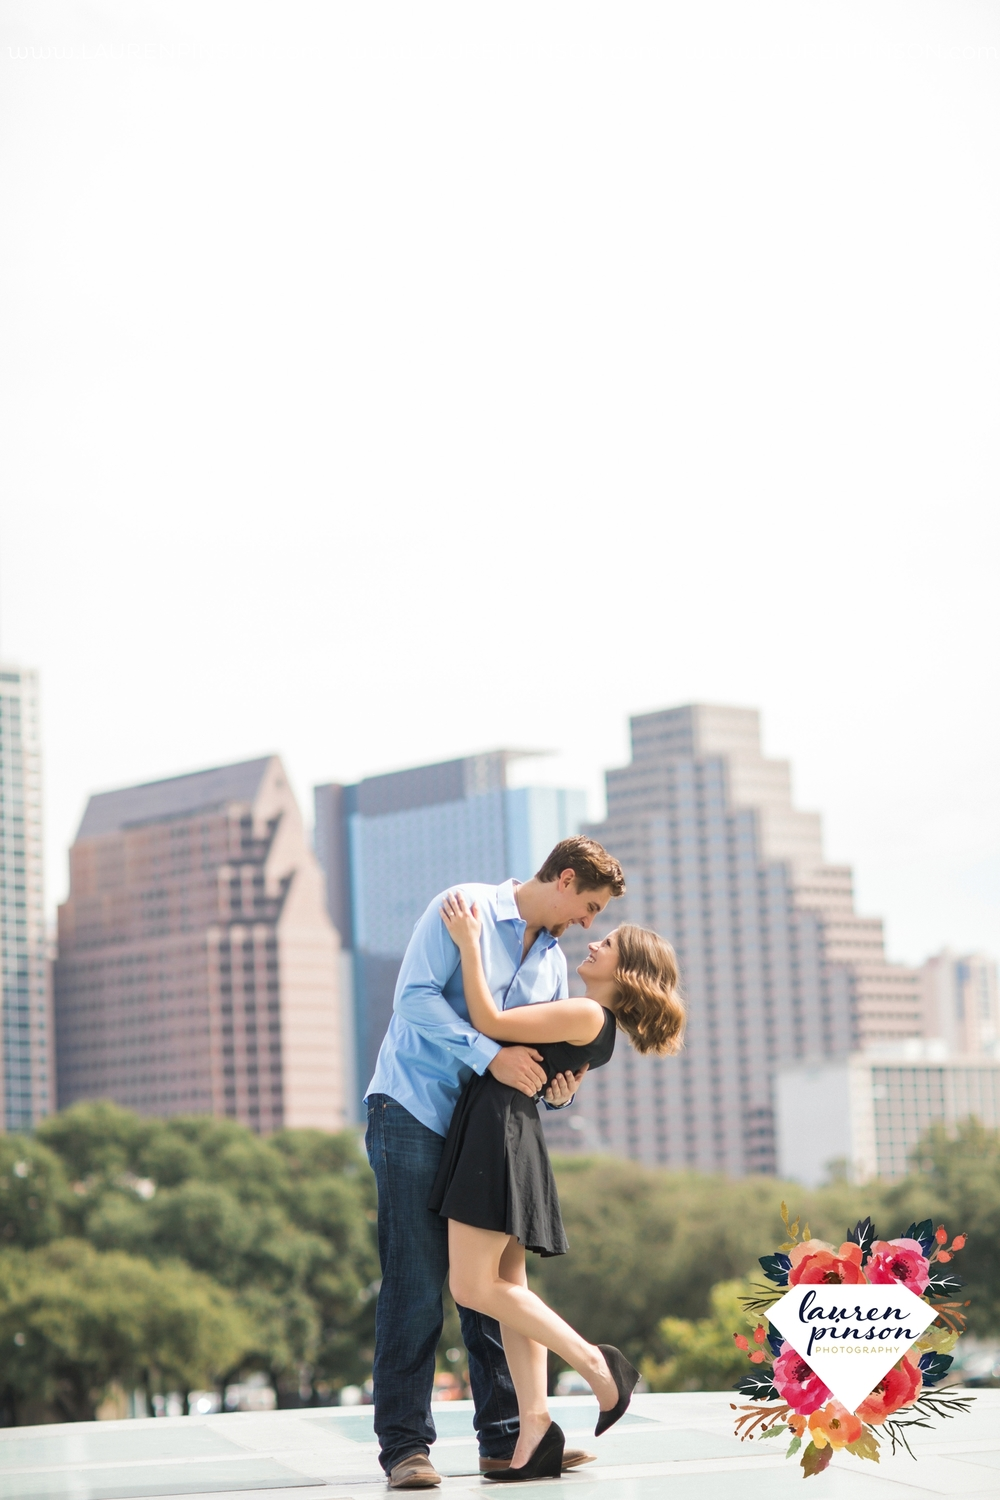 austin-texas-engagement-session-photography-by-wichita-falls-wedding-photgraphy-lauren-pinson_1409.jpg